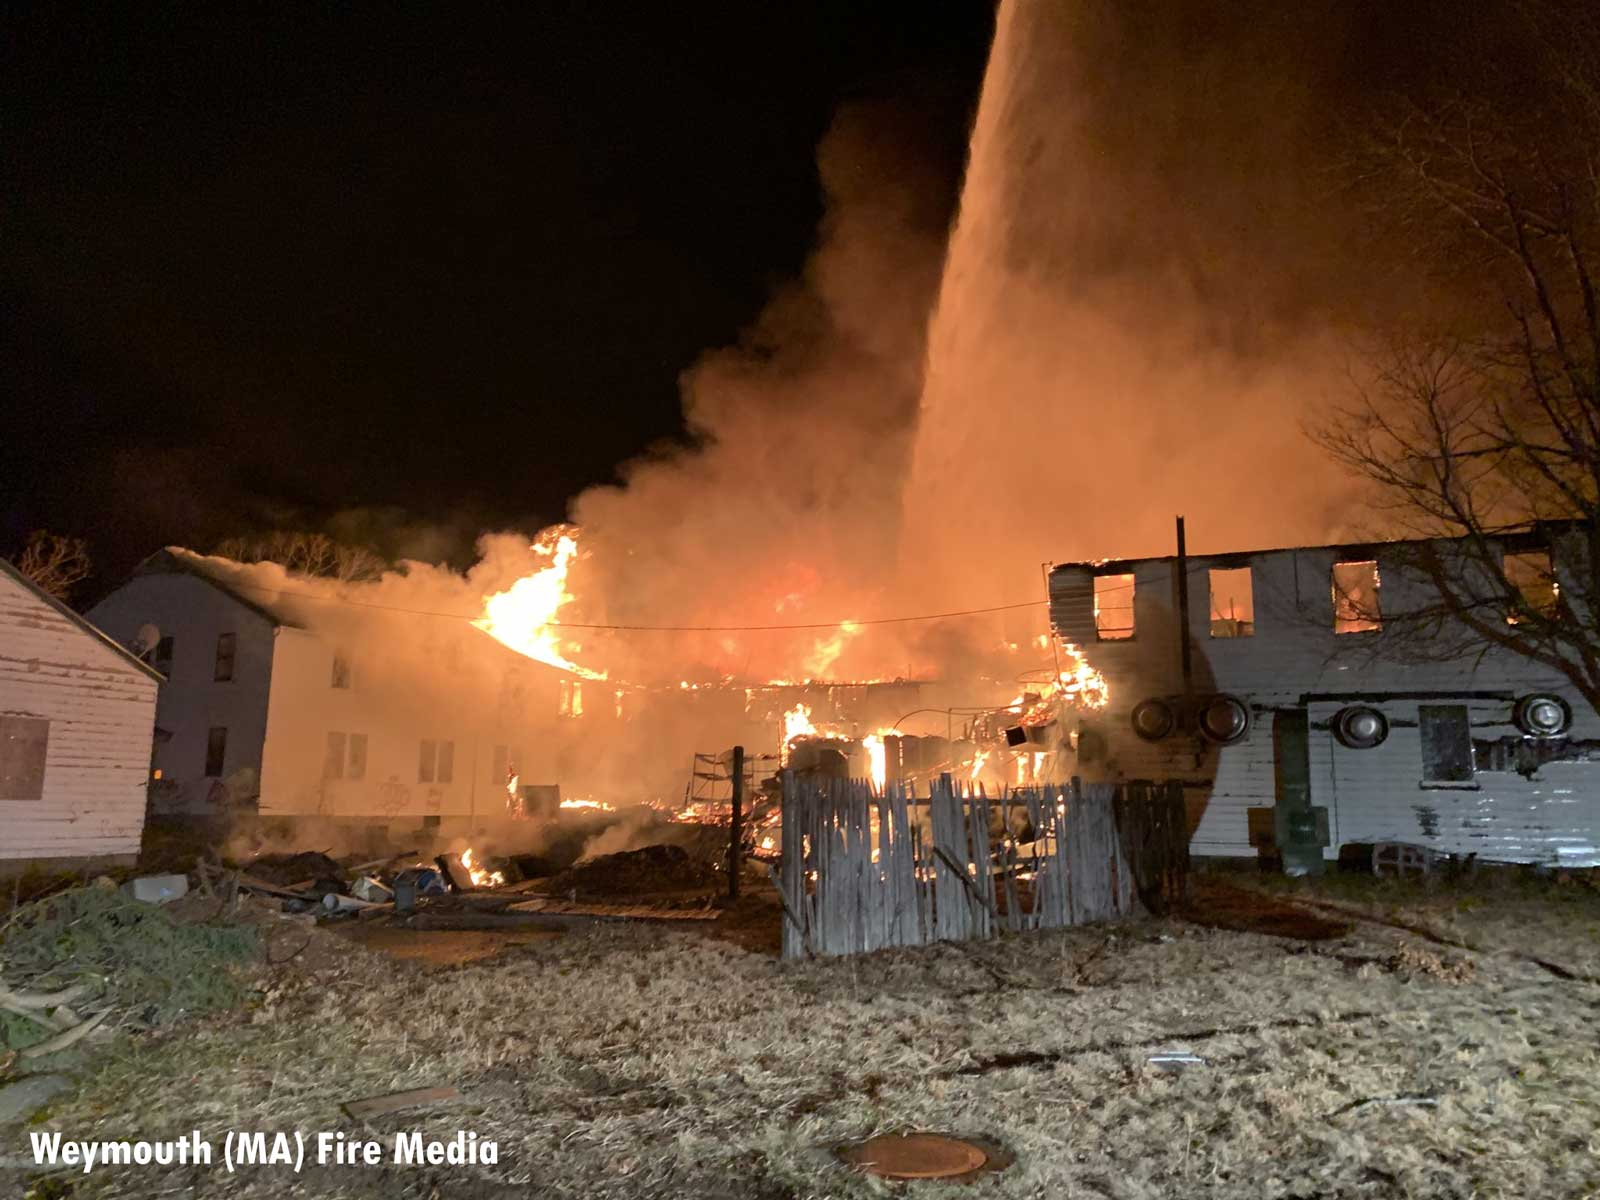 Firefighters at major fire in Weymouth, Massachusetts